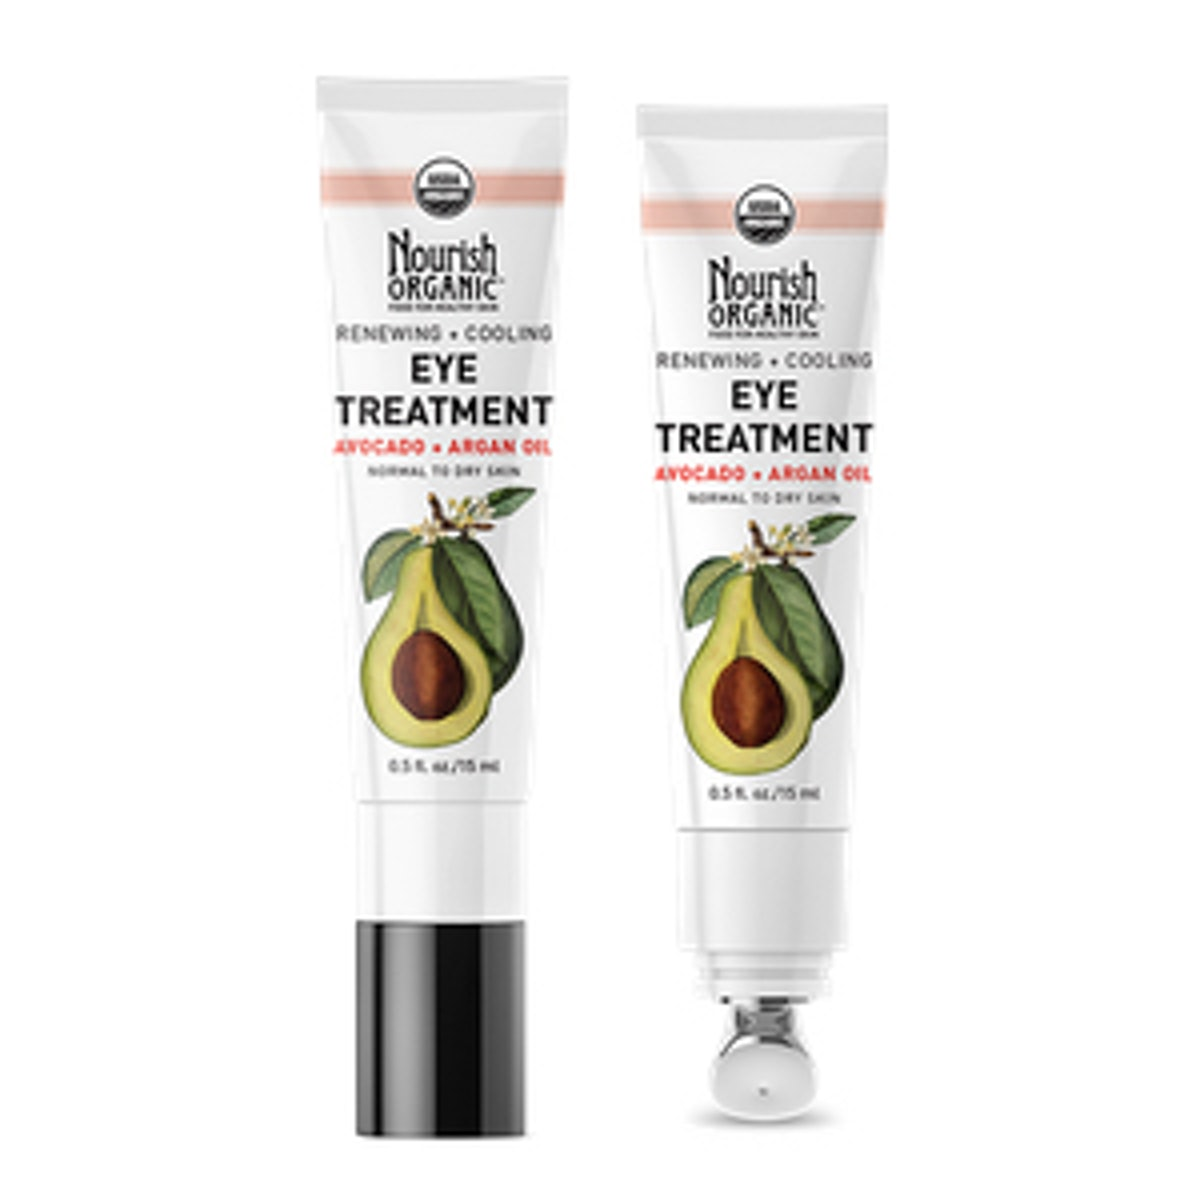 Renewing and Coolling Eye Treatment Cream